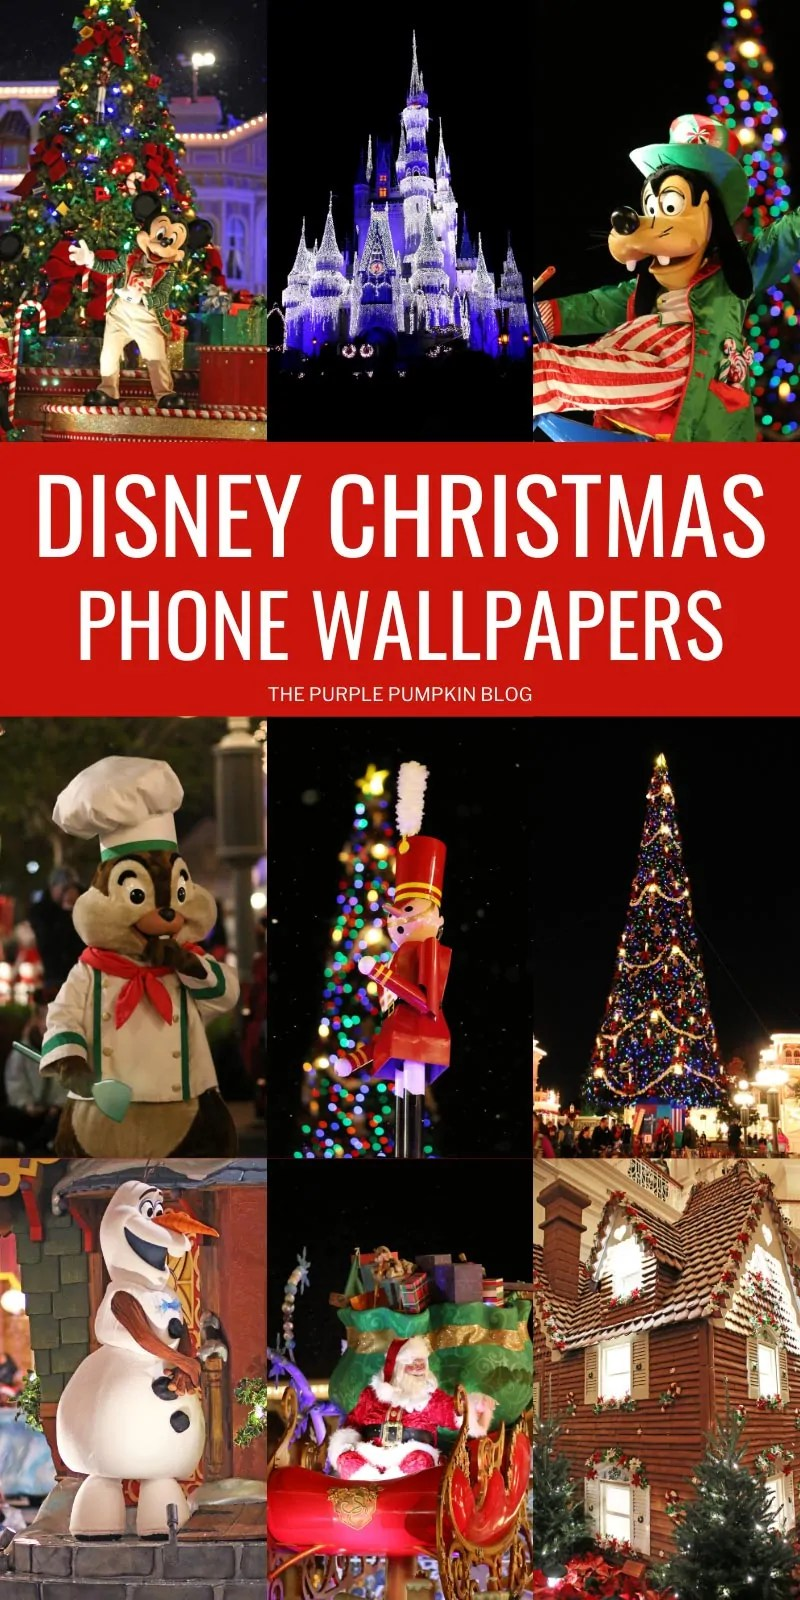 Disney Christmas Wallpapers Phone Wallpapers